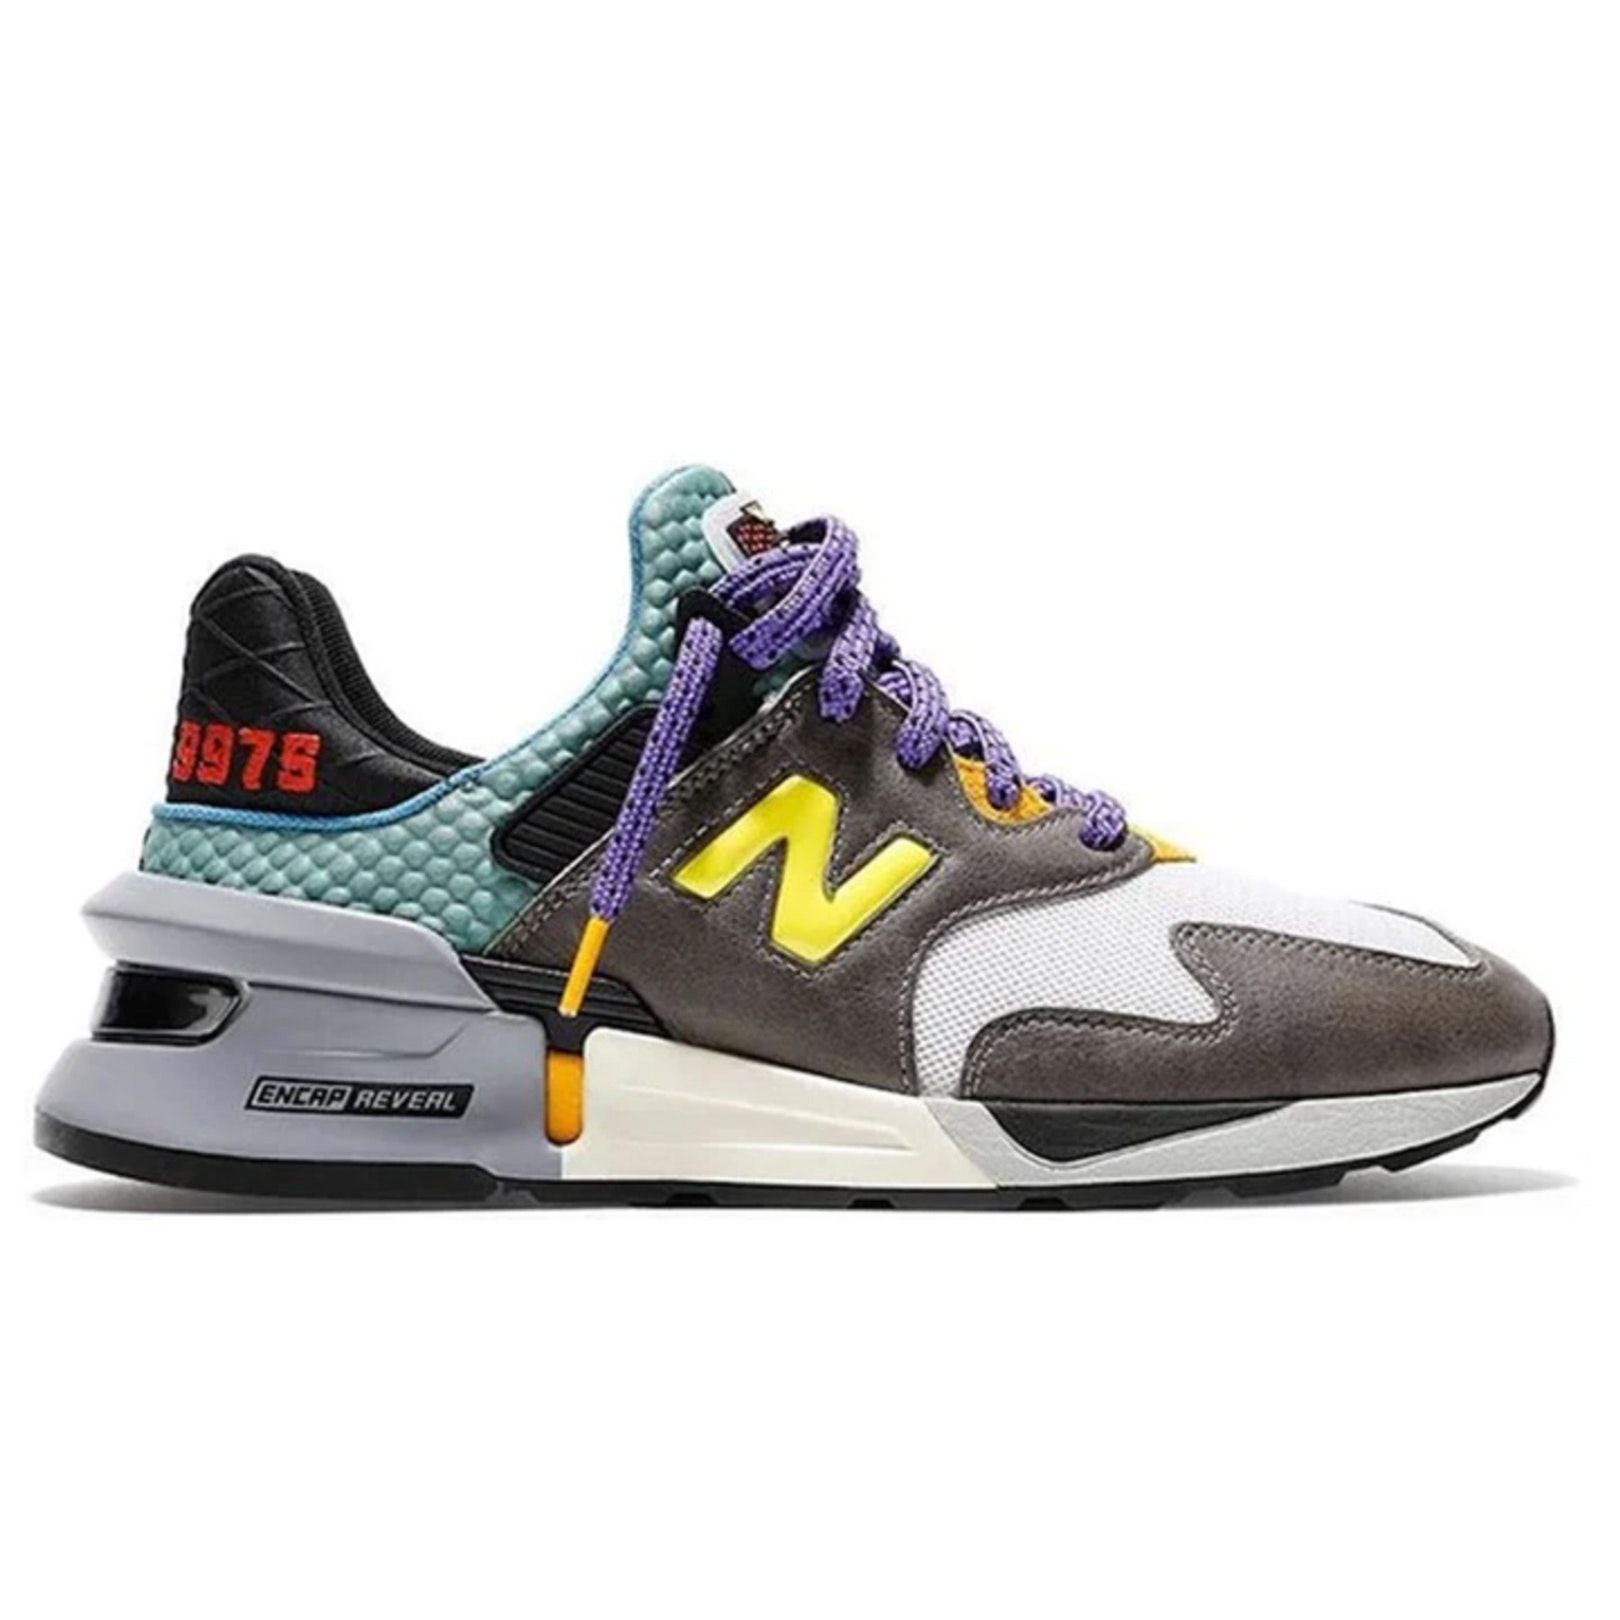 New Balance Sneaker Collaborations